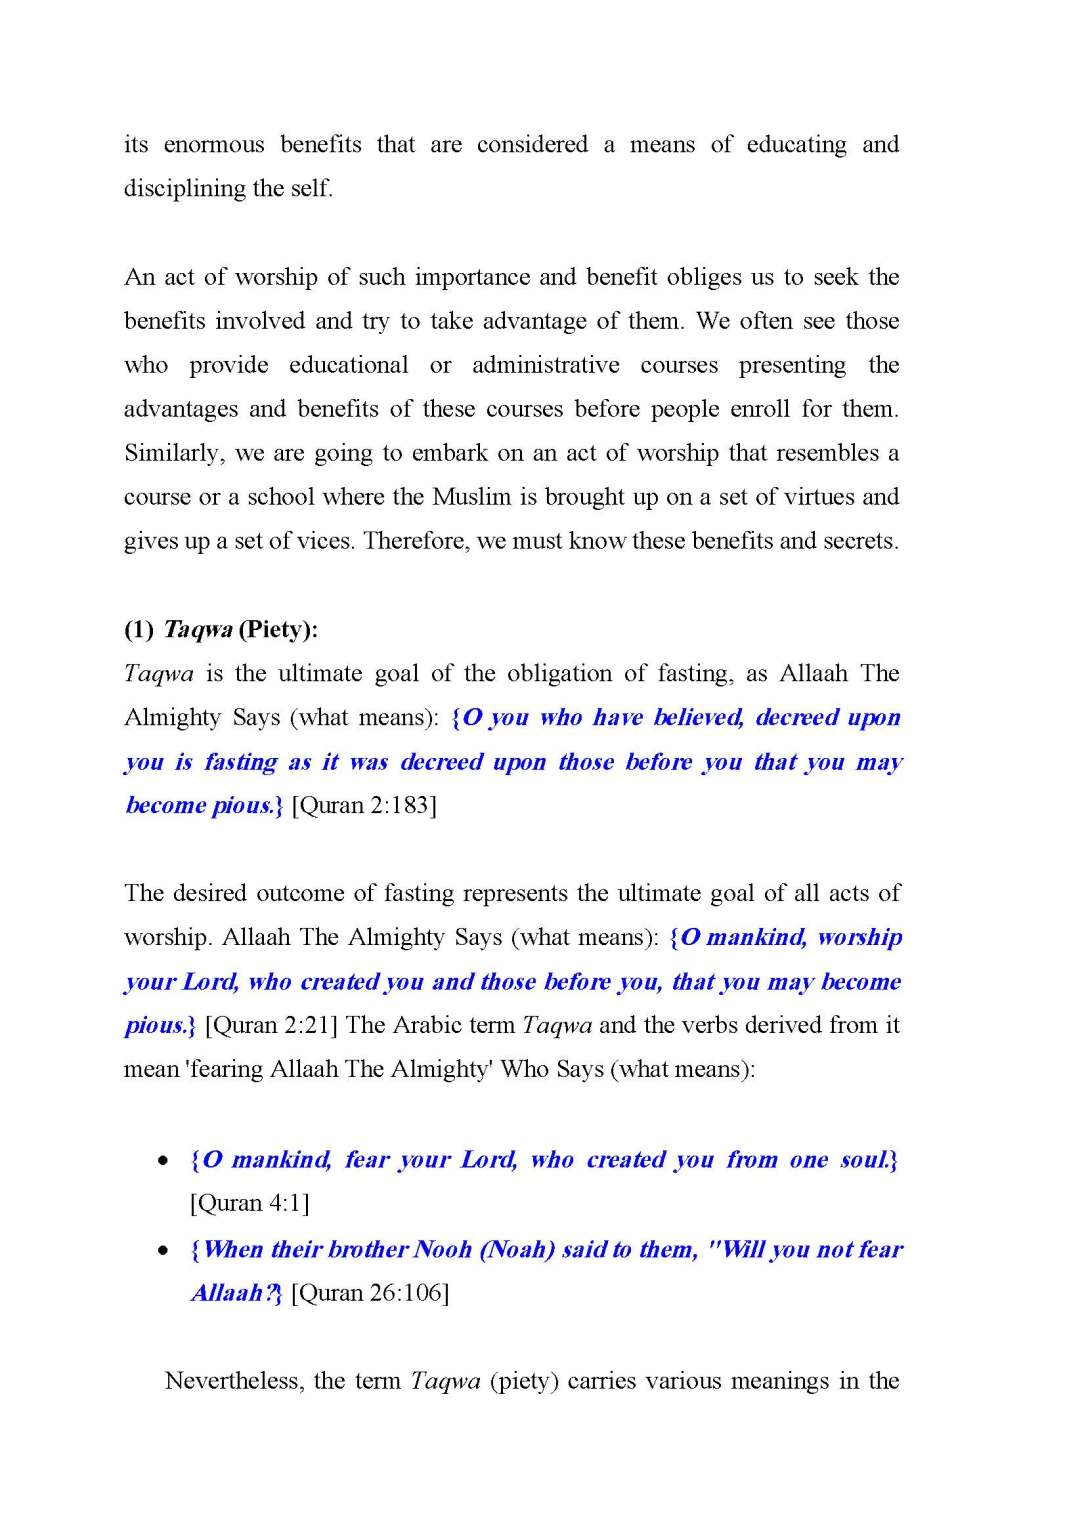 Benefits_and_Secrets_of_Fasting_Page_02